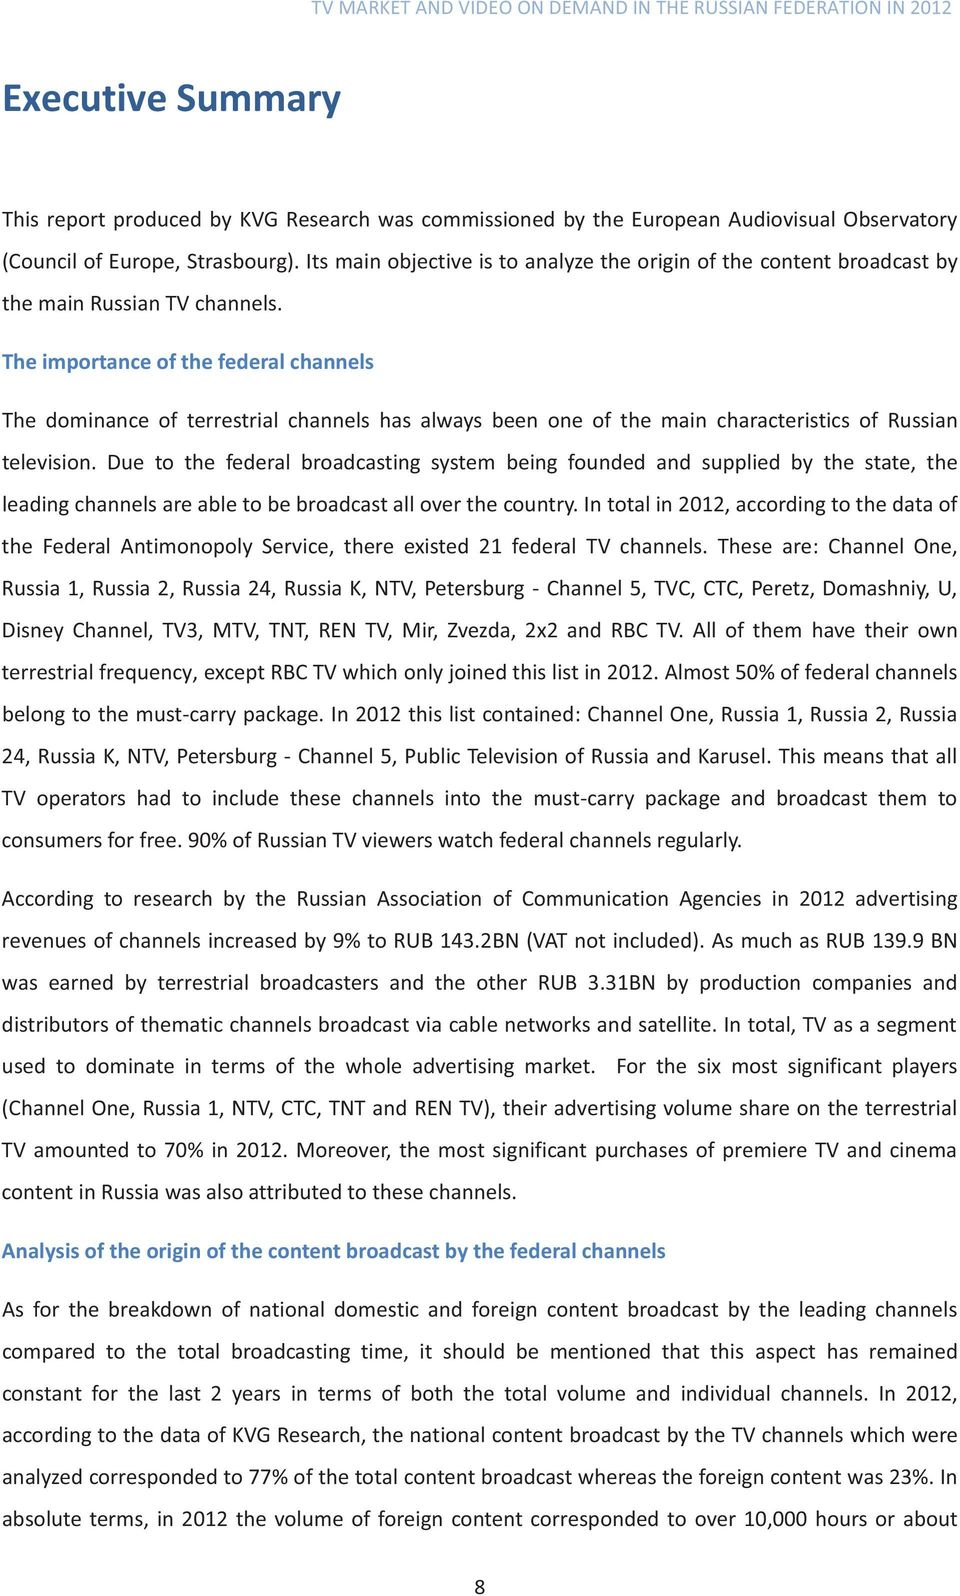 TV Market and Video on Demand in the Russian Federation - PDF